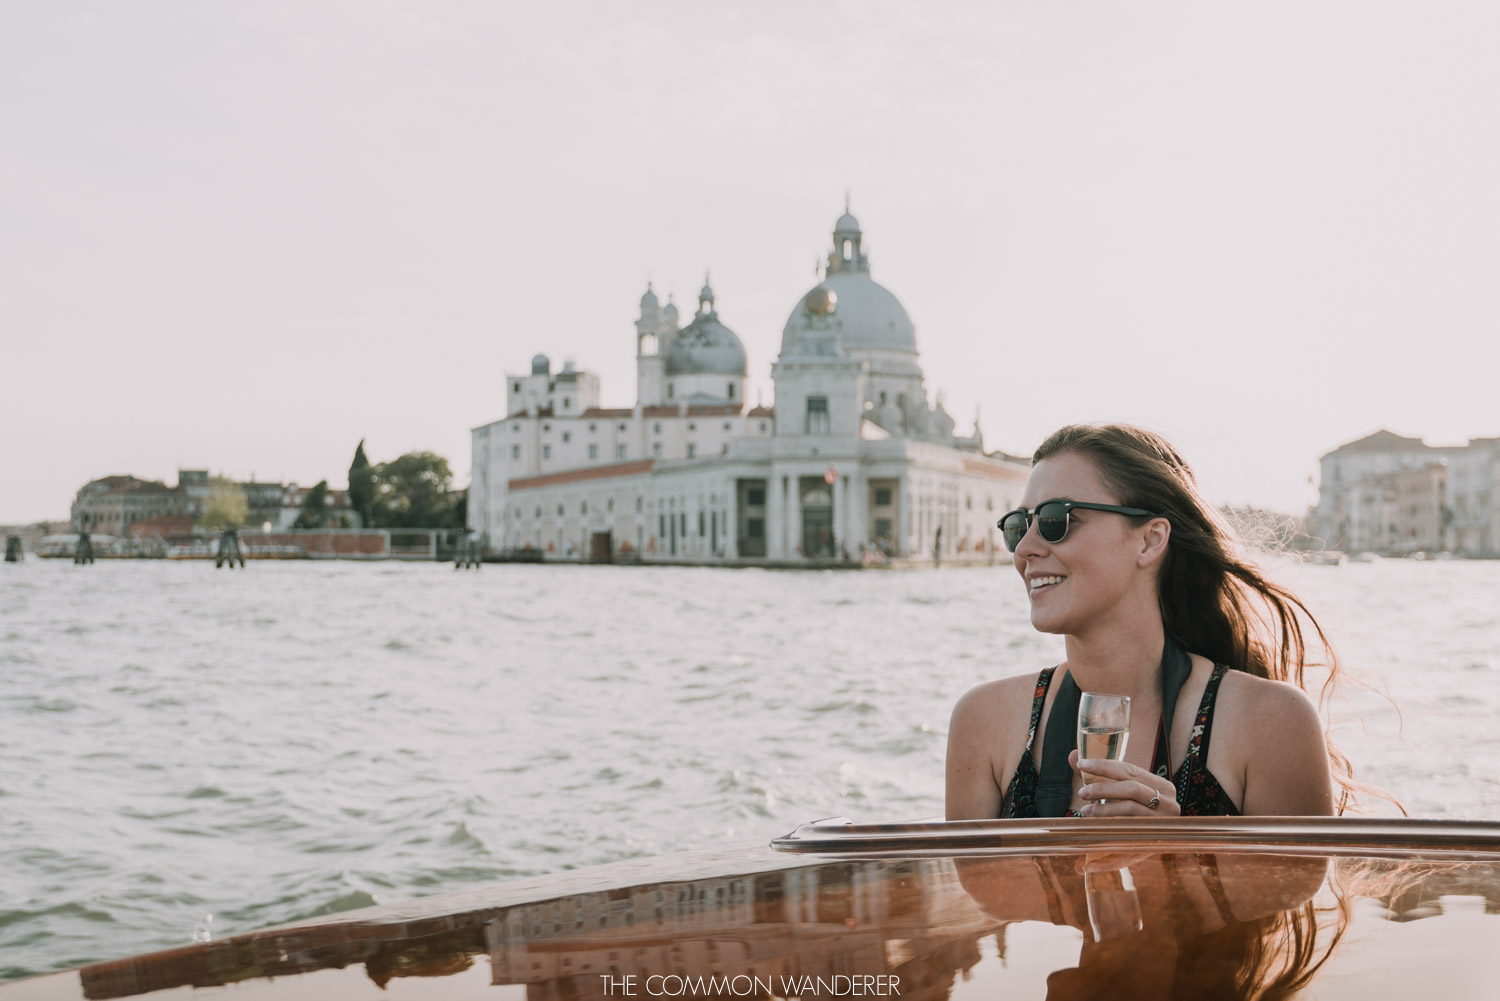 Venice is arguably the world's most beautiful city, but for backpackers, it can drain the funds. Here's our 'how-to' guide to backpacking Venice on a budget.